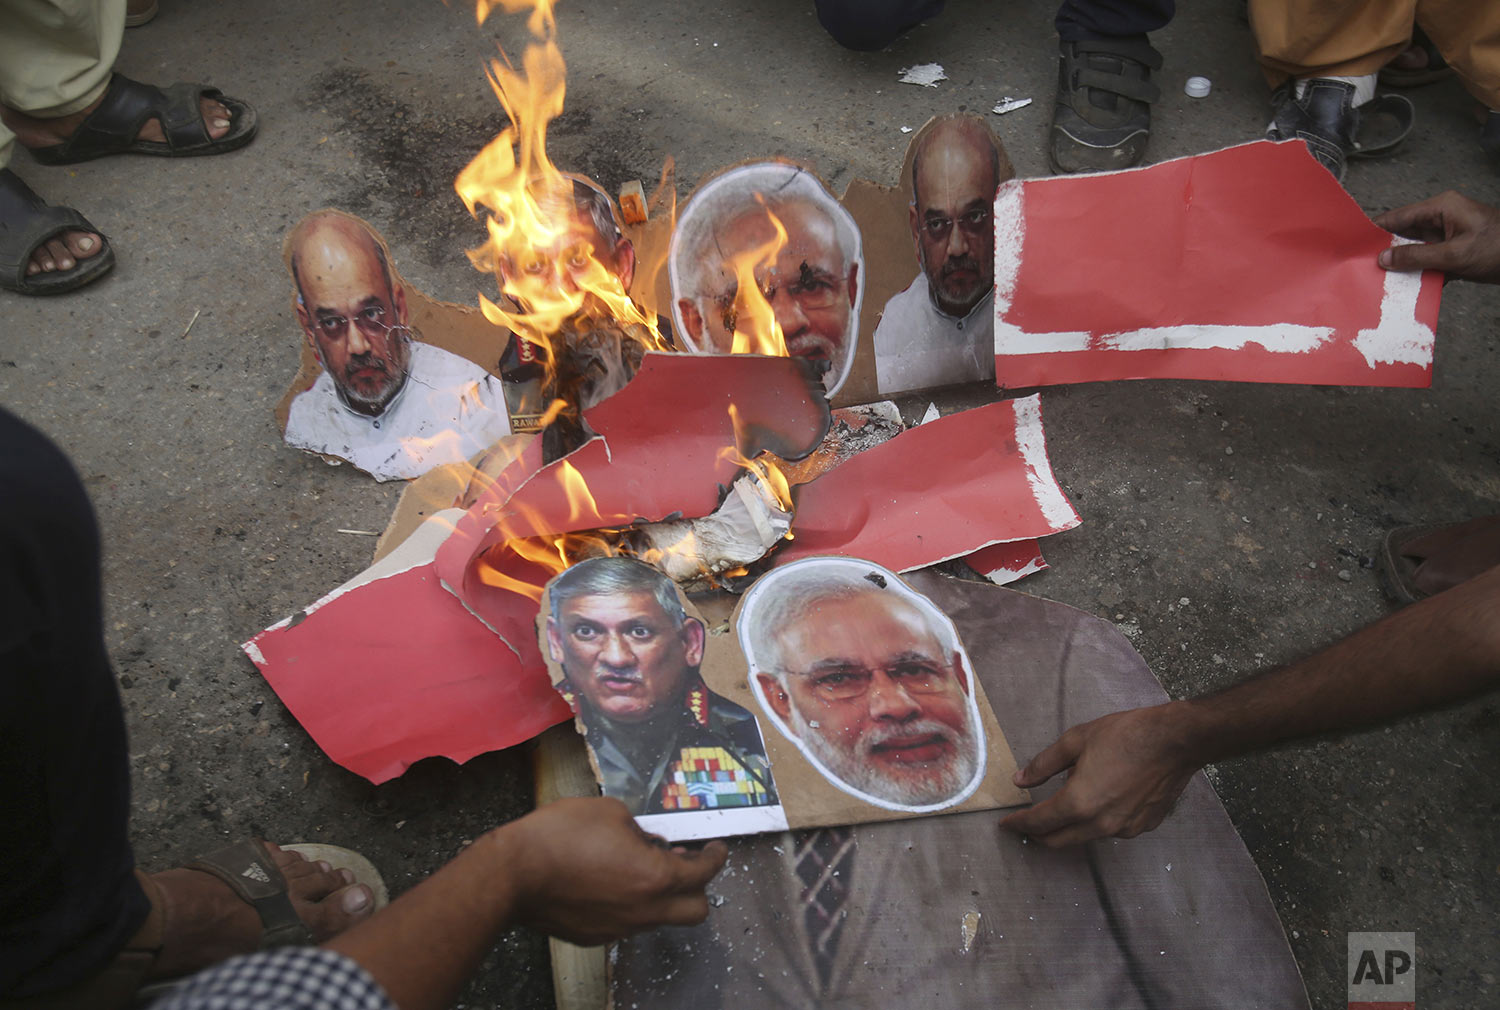 Pakistani protesters burn posters of Indian leaders during a protest in Karachi, Pakistan, Friday, Aug. 9, 2019. (AP Photo/Fareed Khan)